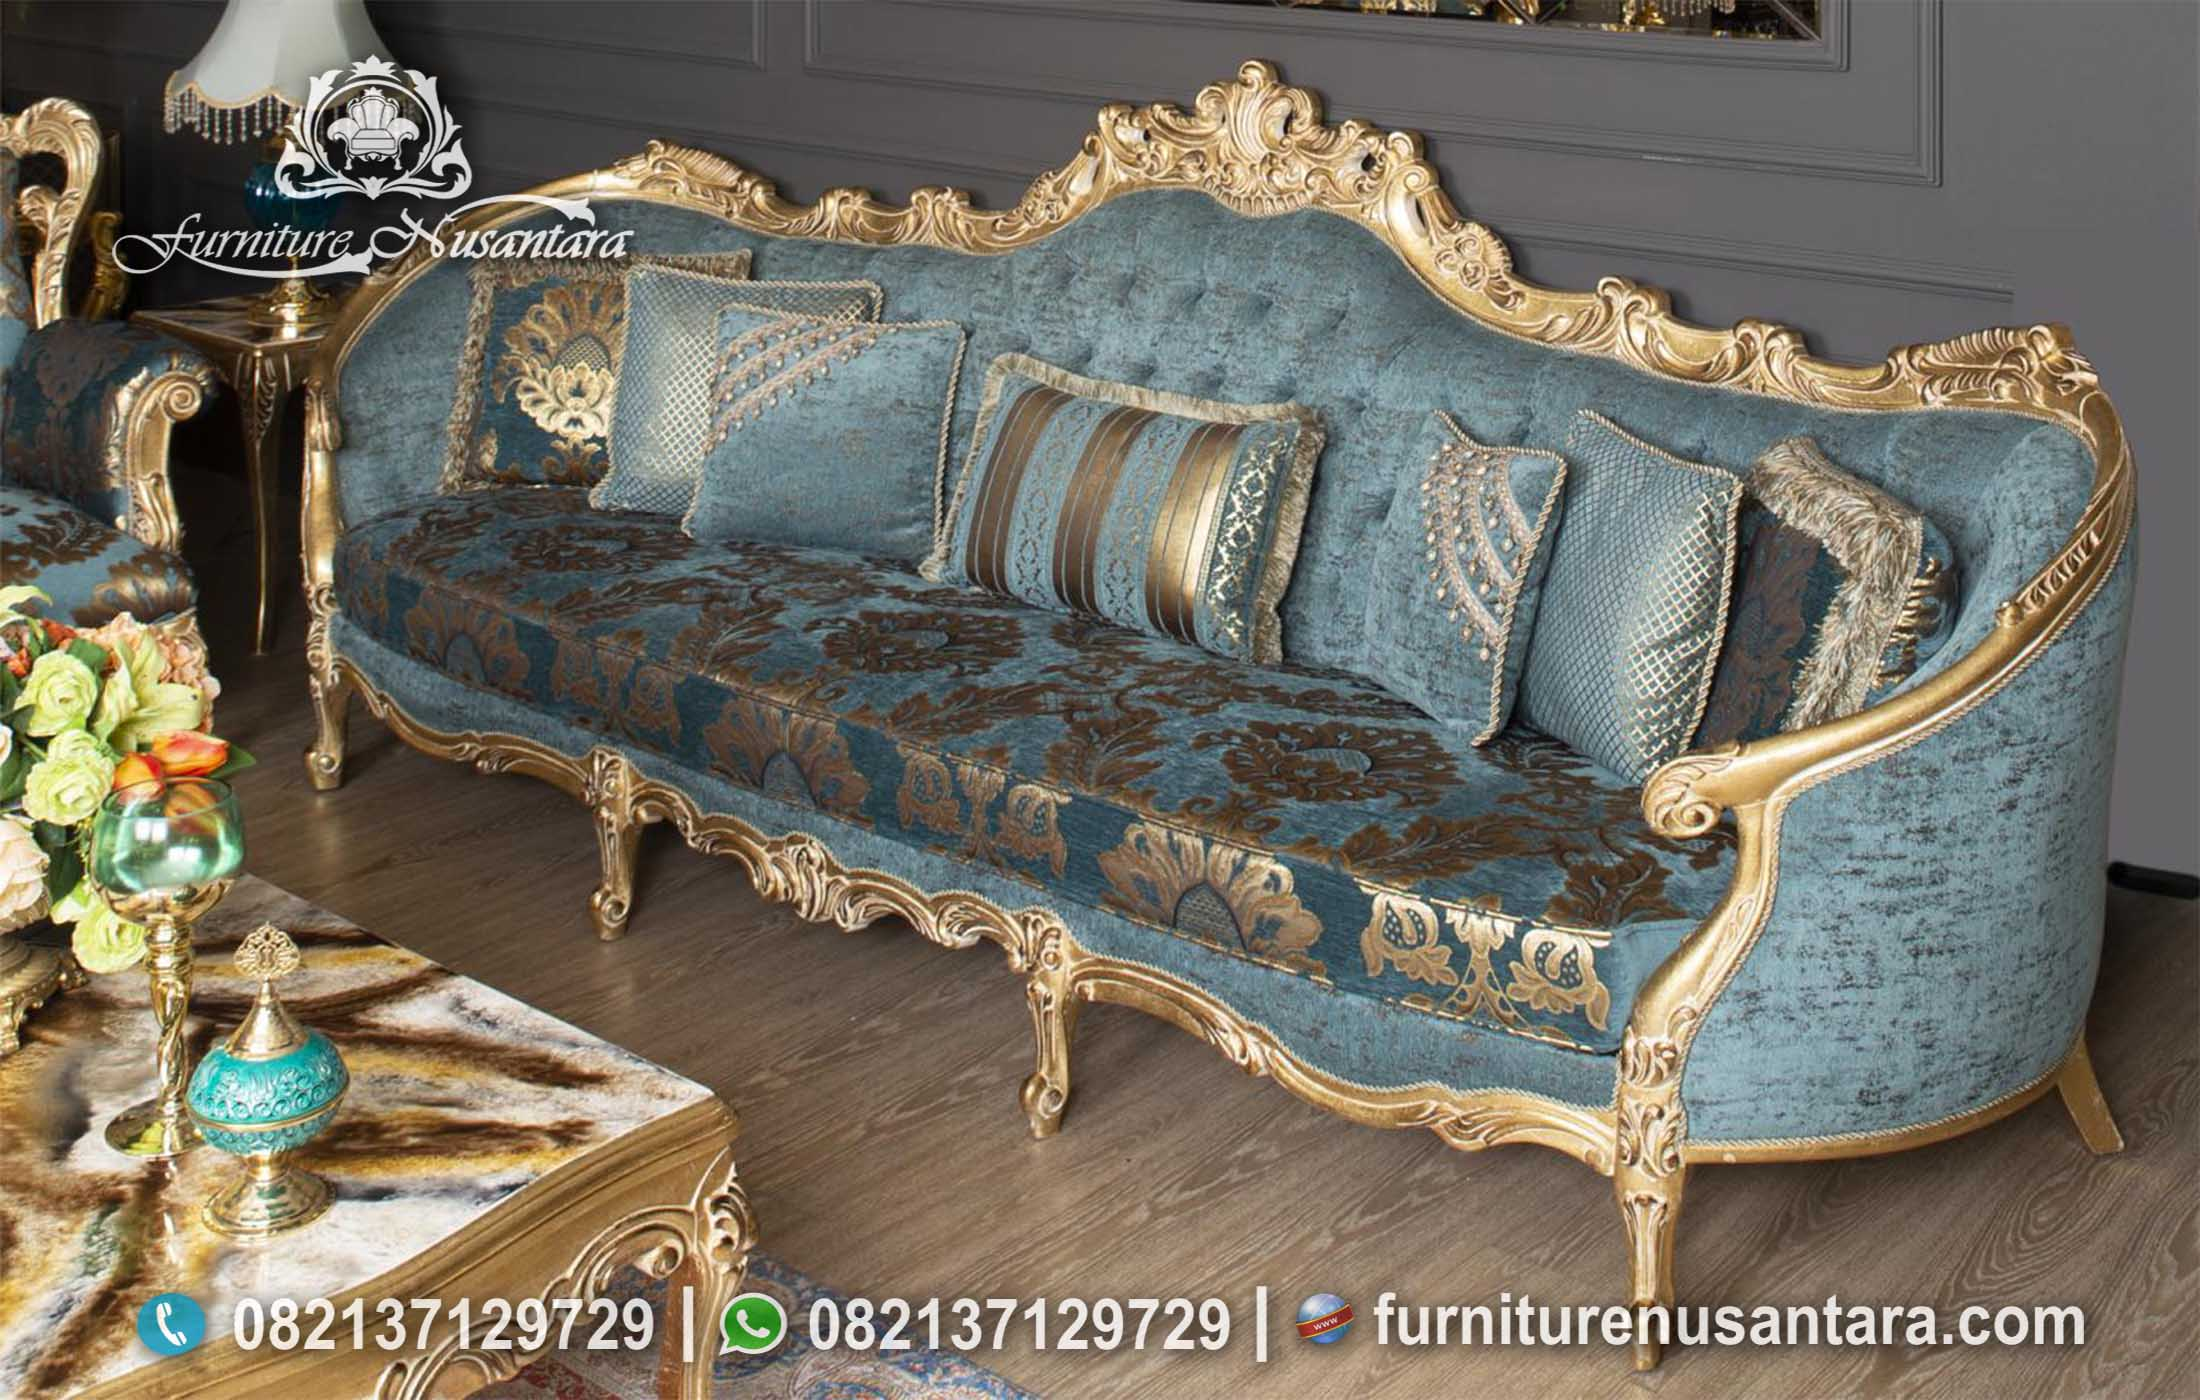 Model Sofa Ukir Modern Terbaru ST-62, Furniture Nusantara